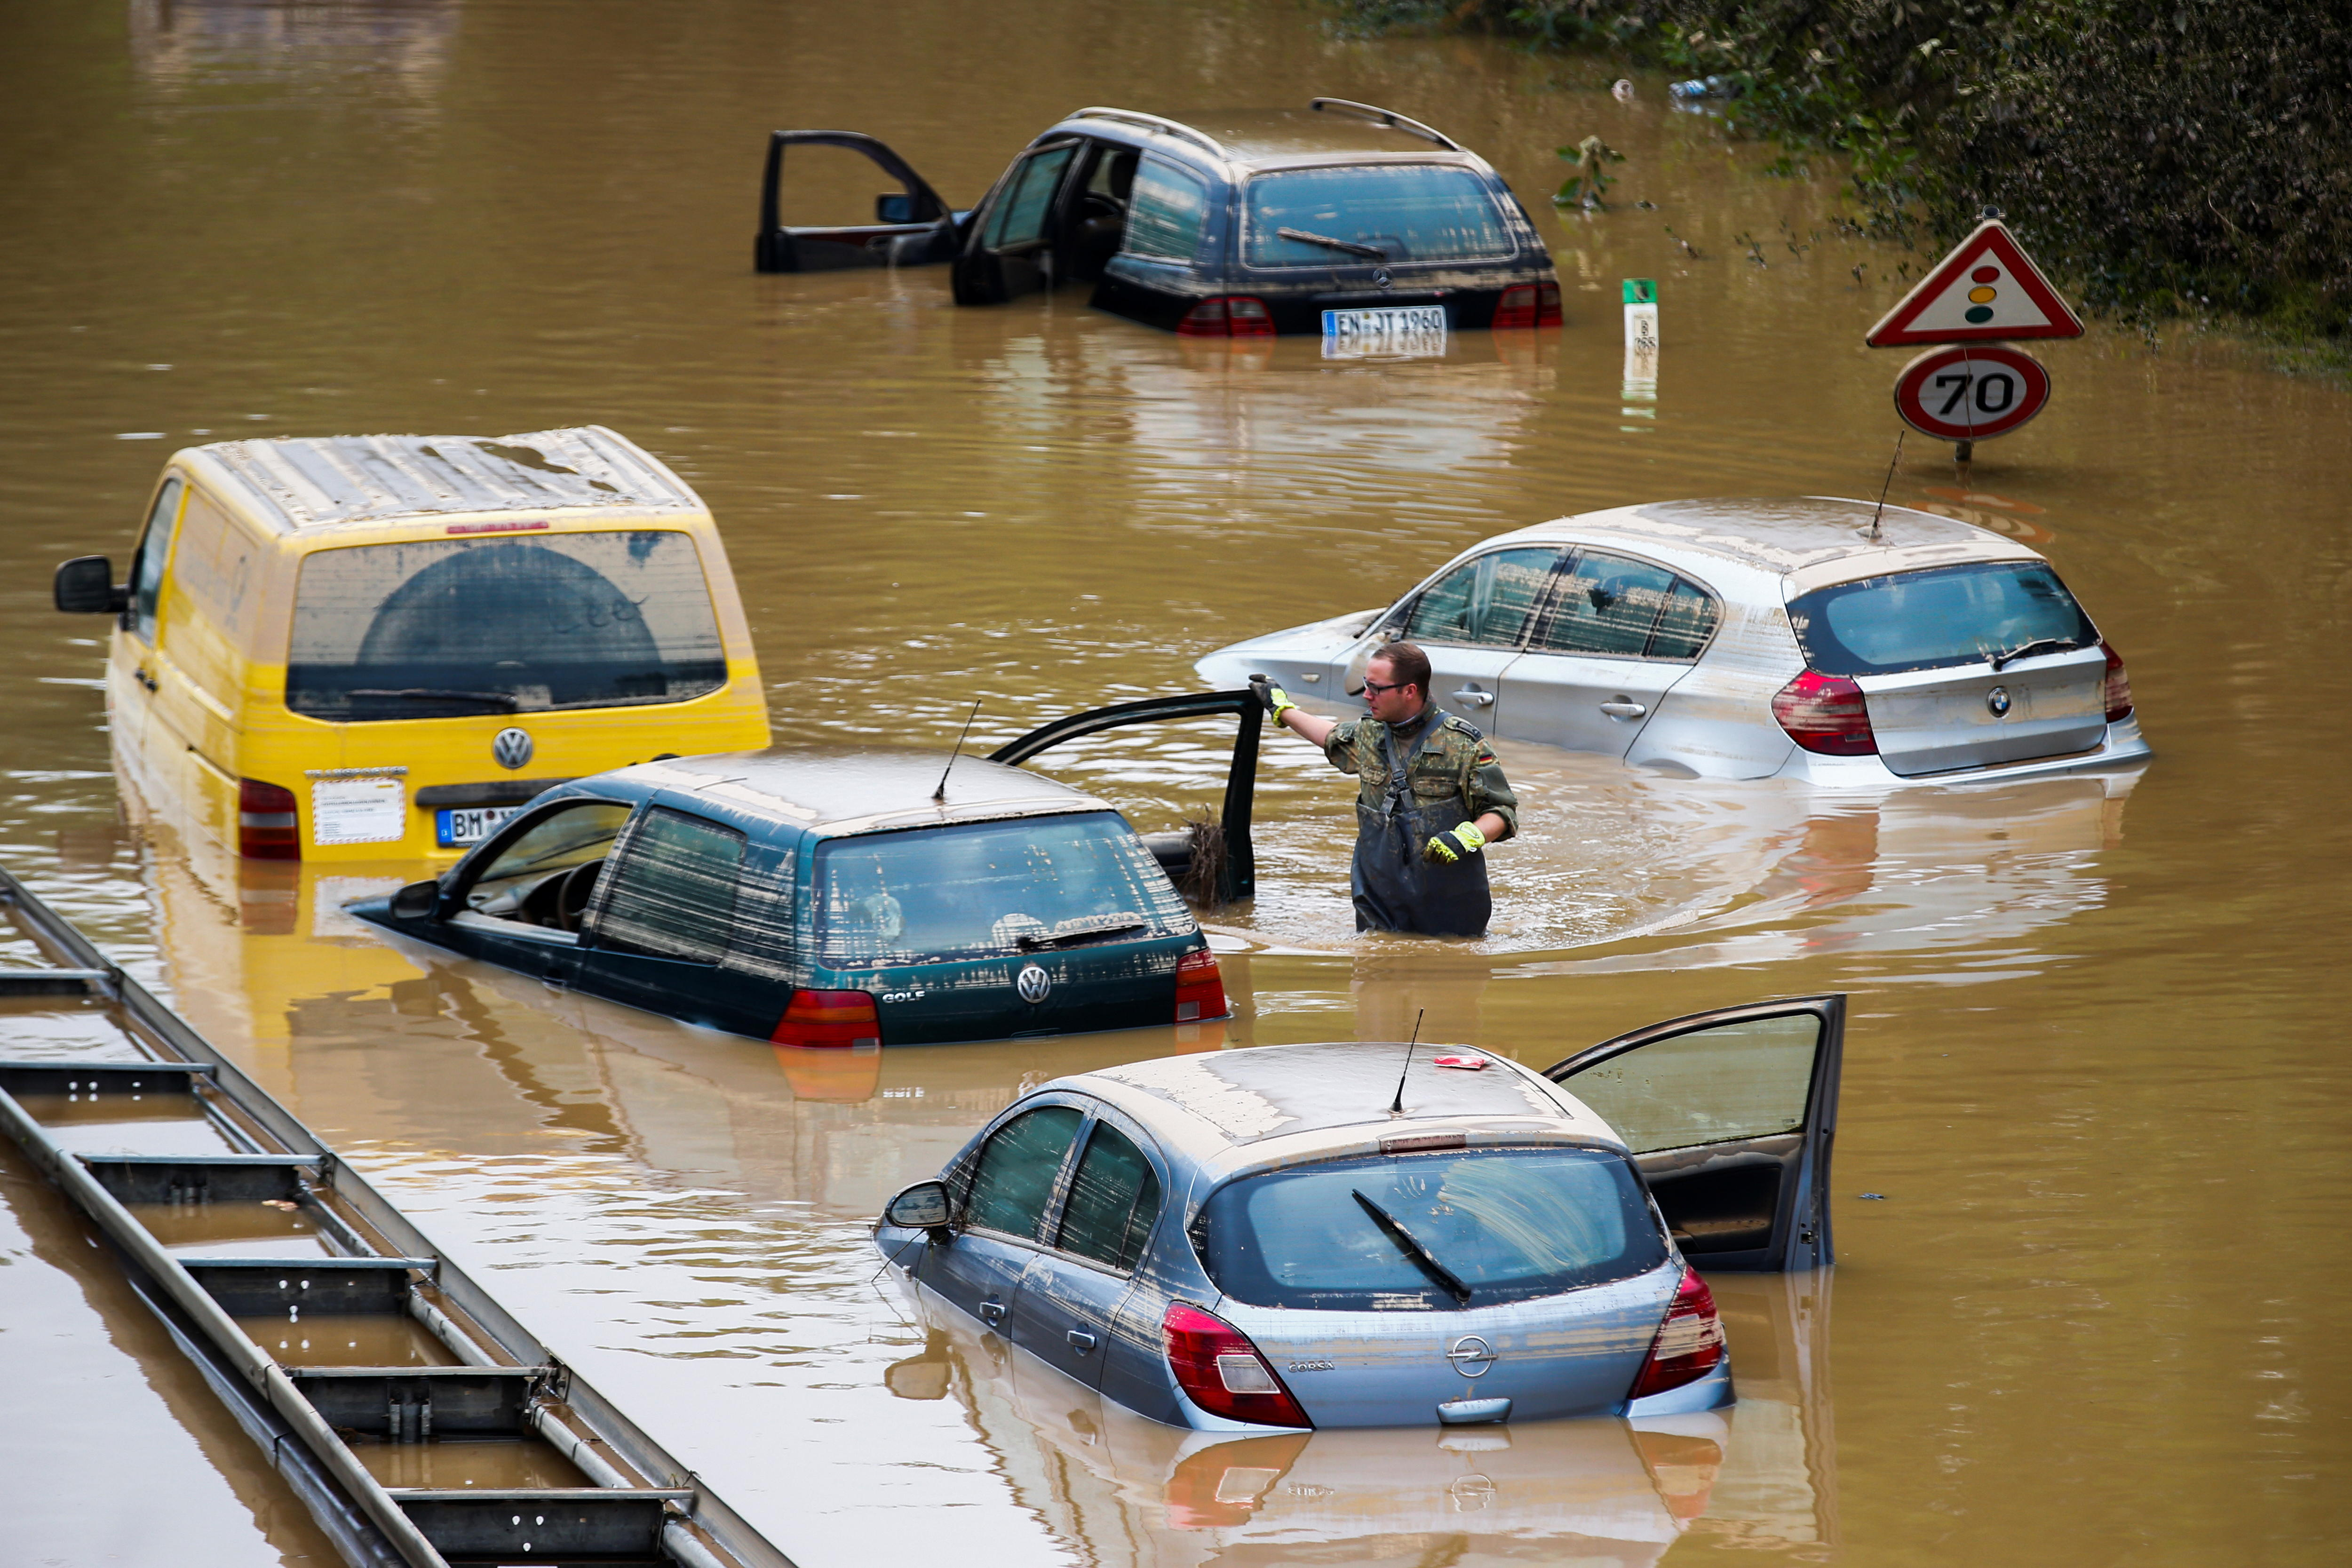 Rescuers search through cars submerged in floodwaters.